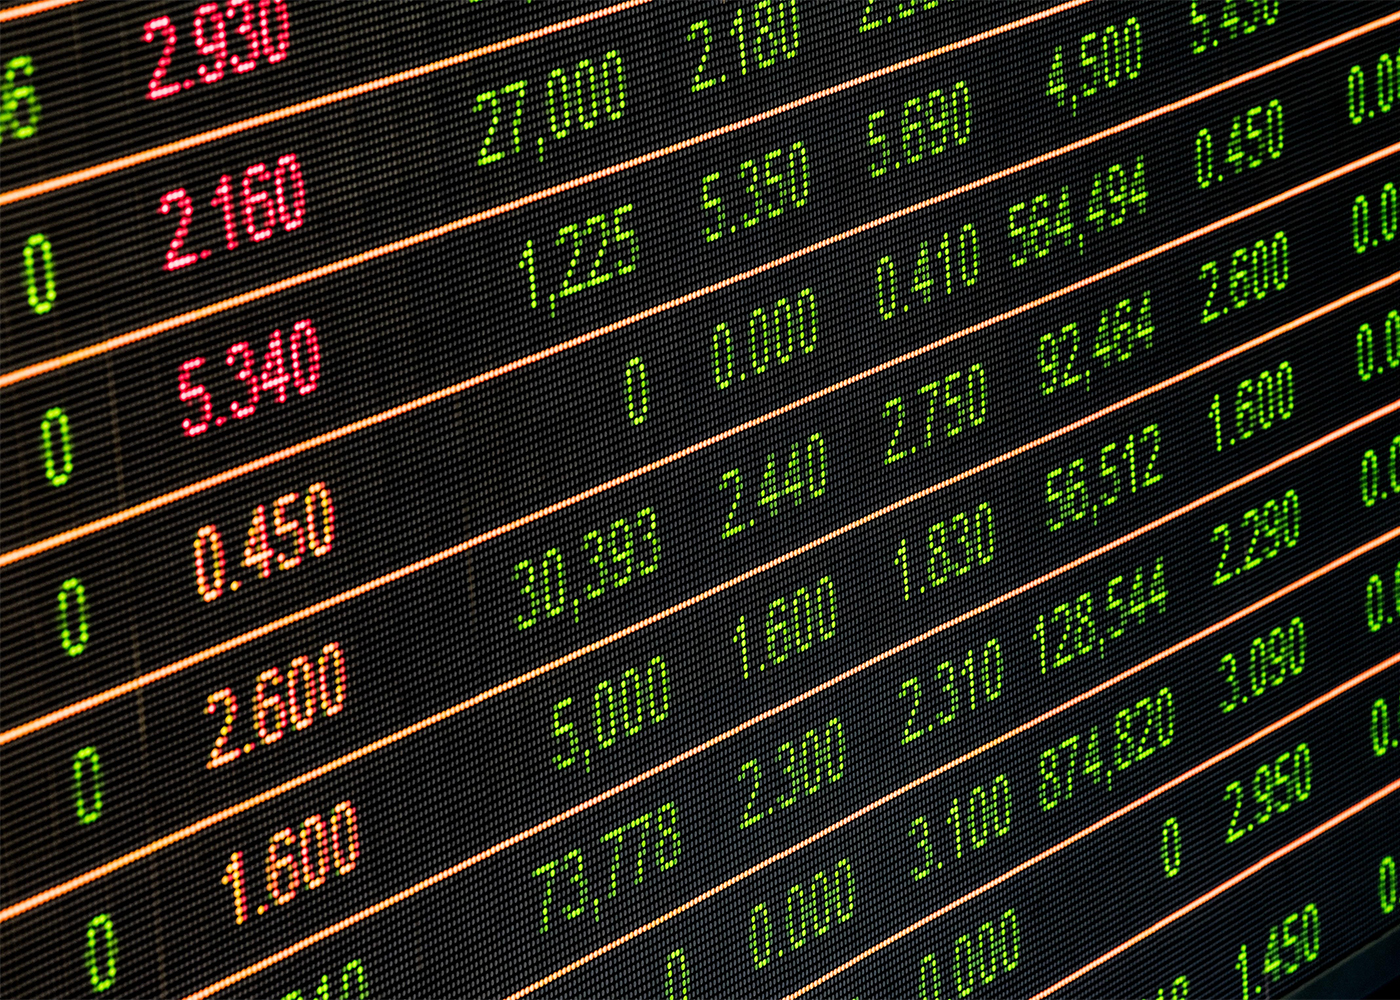 The Stock Market and the Economy Are Not the Same: A Guide to Understanding the Difference